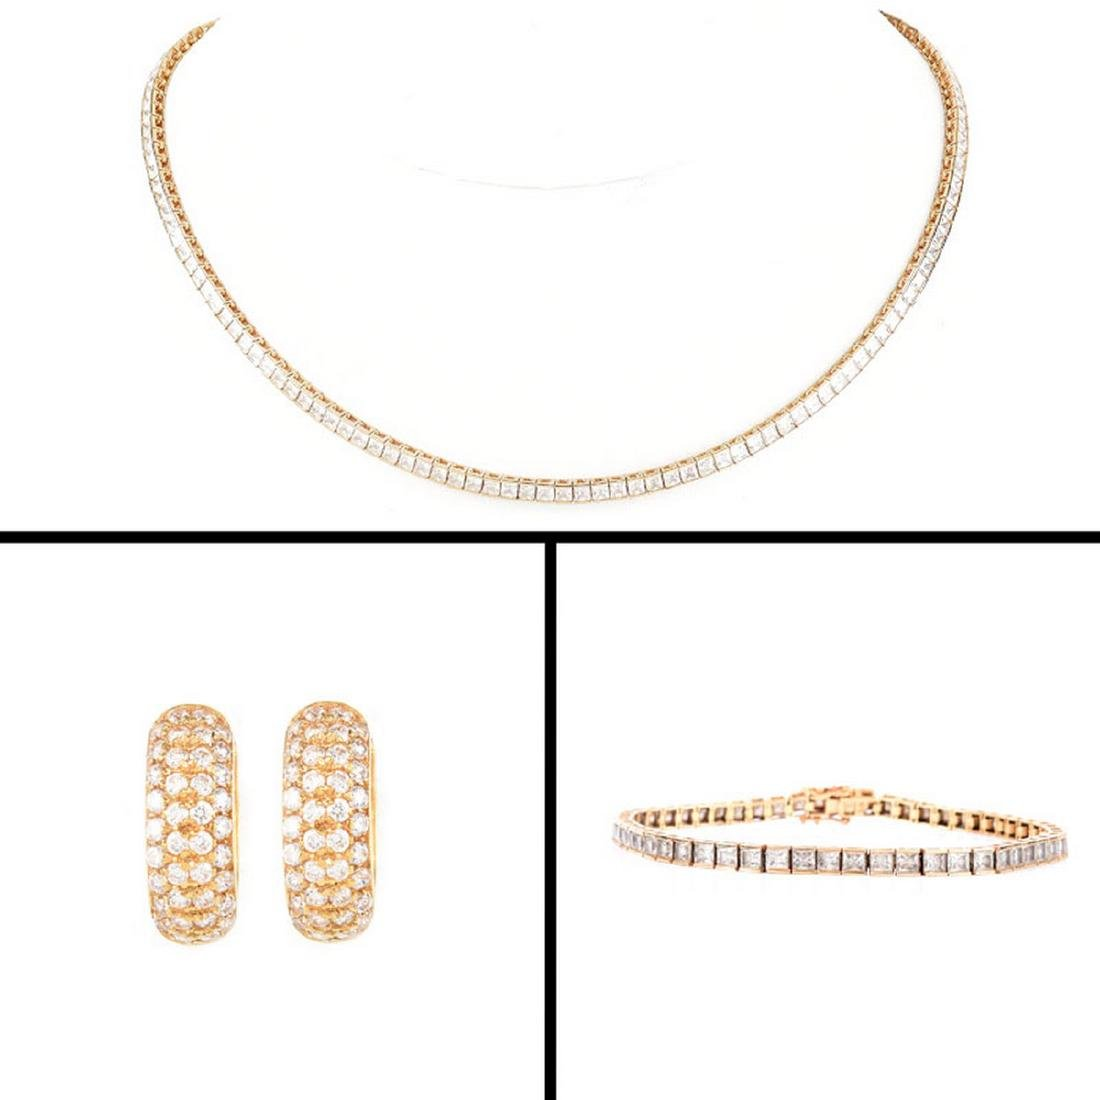 Contemporary 14K Gold and Cubic Zirconia Lot